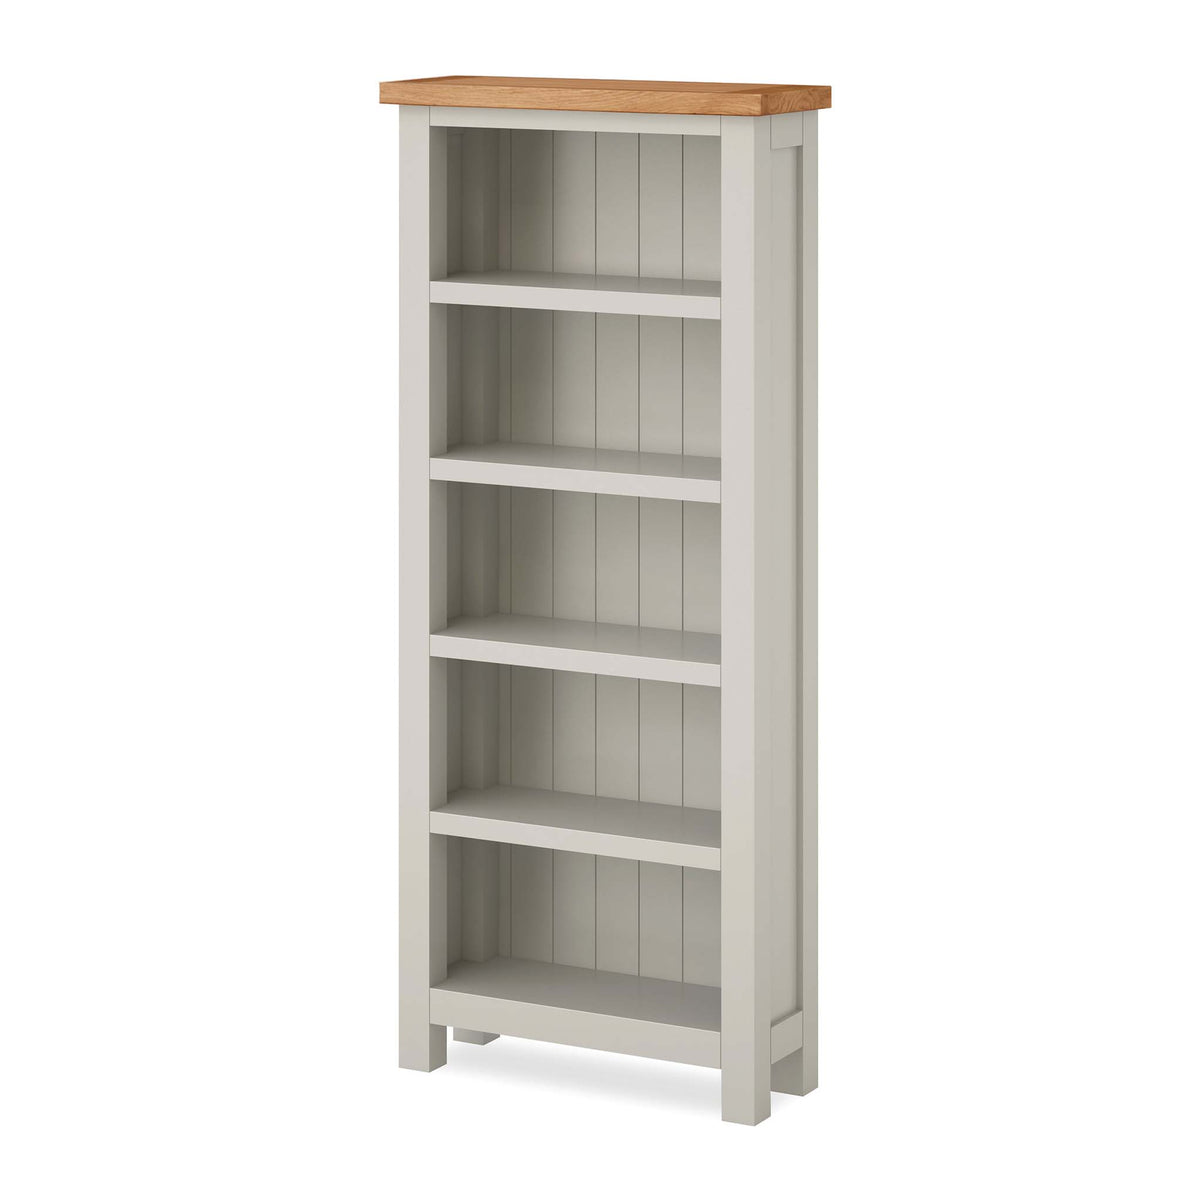 Dorset Stone Grey Slim Bookcase by Roseland Furniture